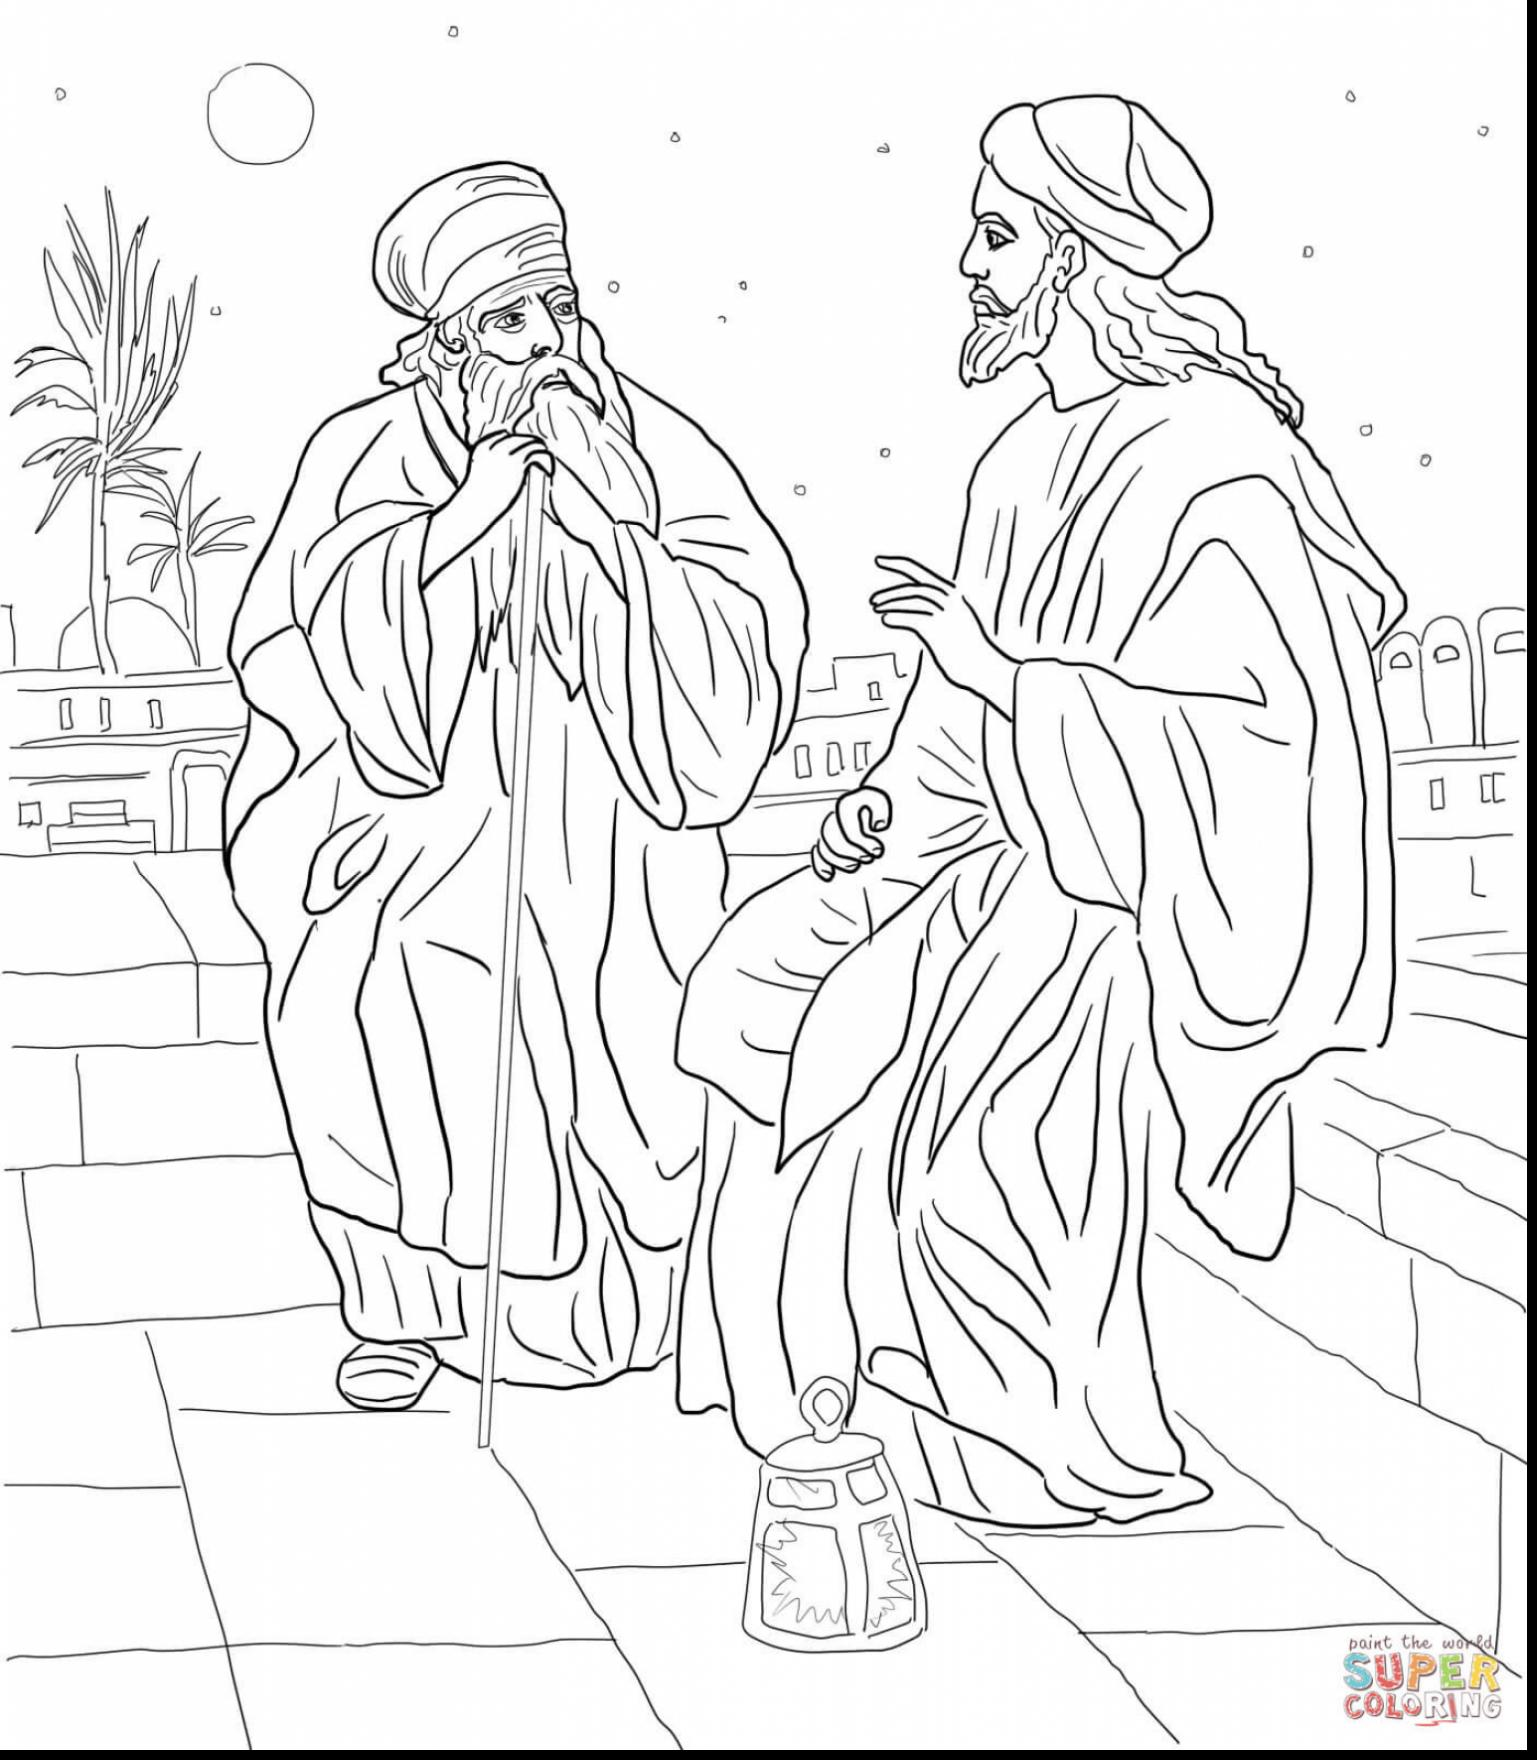 The Best Free Zacchaeus Coloring Page Images Download